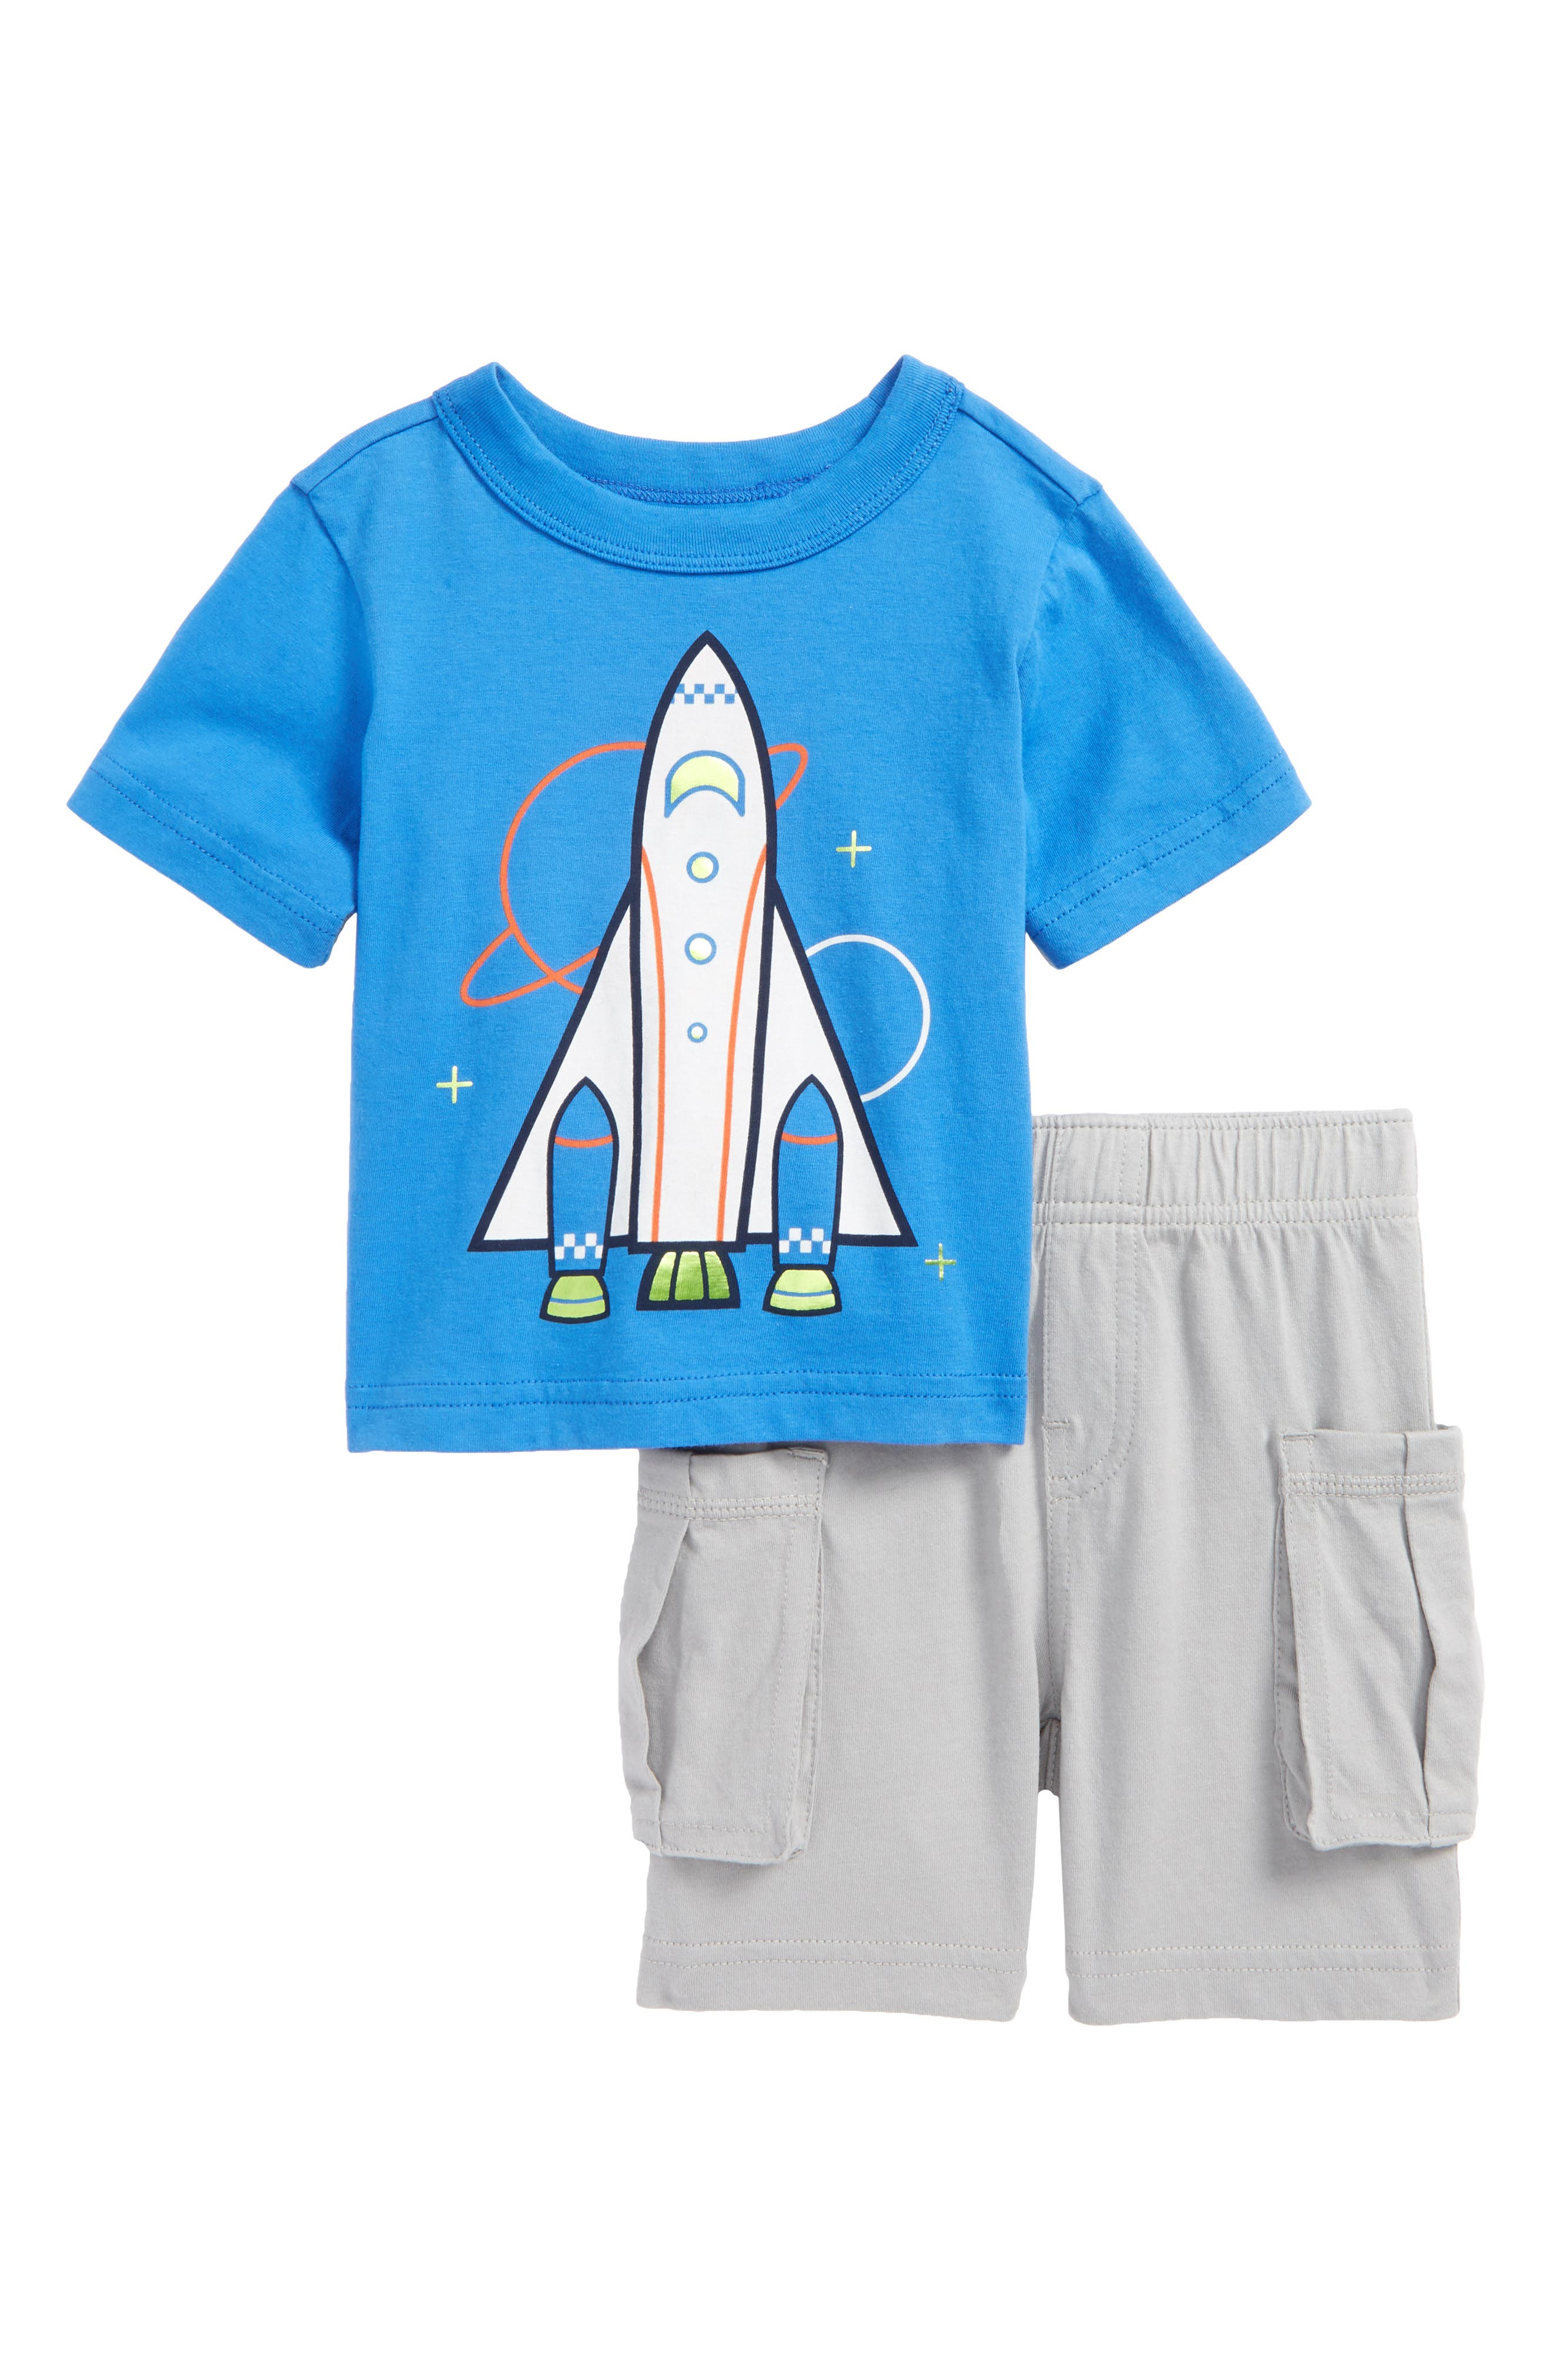 Spaceship Graphic T-Shirt & Cargo Shorts Set,                         Main,                         color, Palace Blue